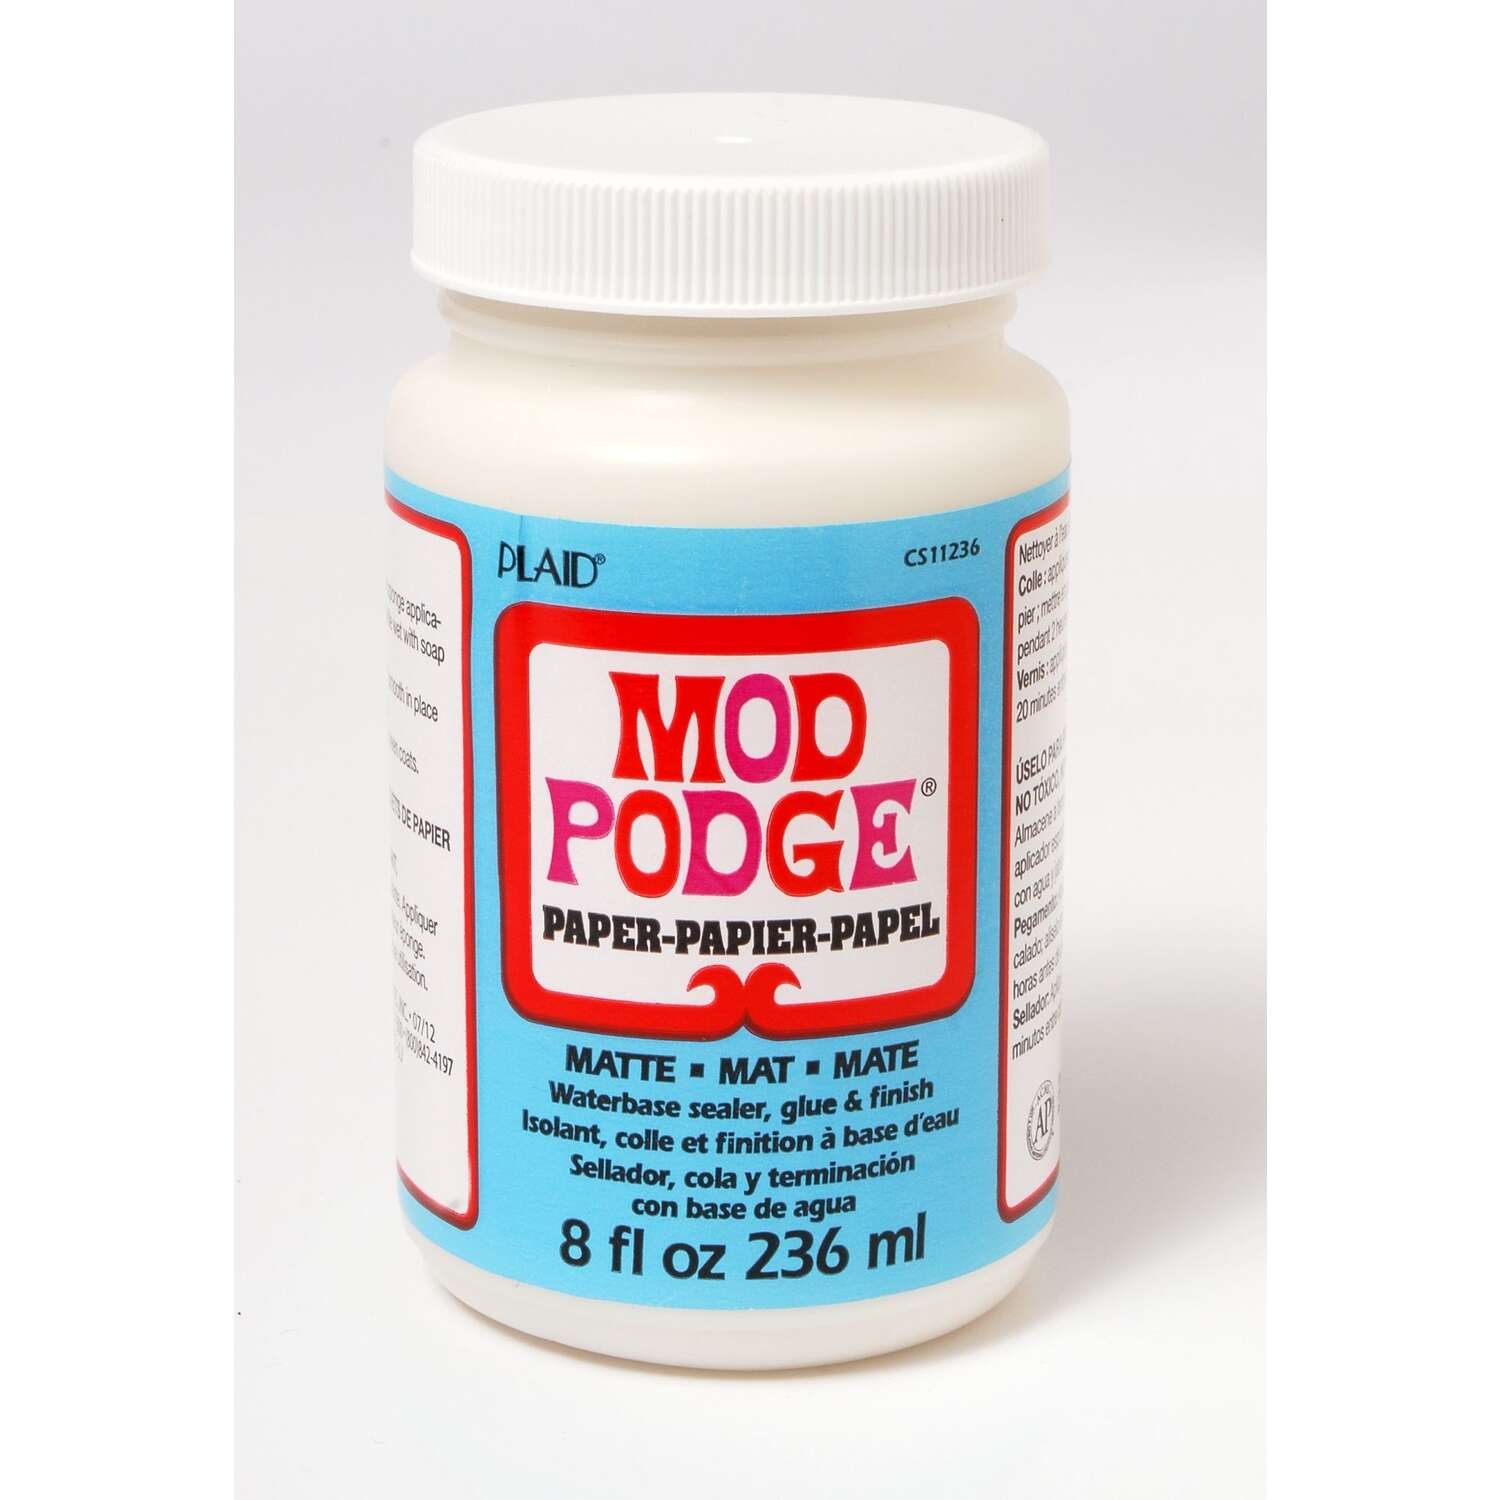 Plaid  Mod Podge  High Strength  Glue  Decoupage Paper  8 oz.